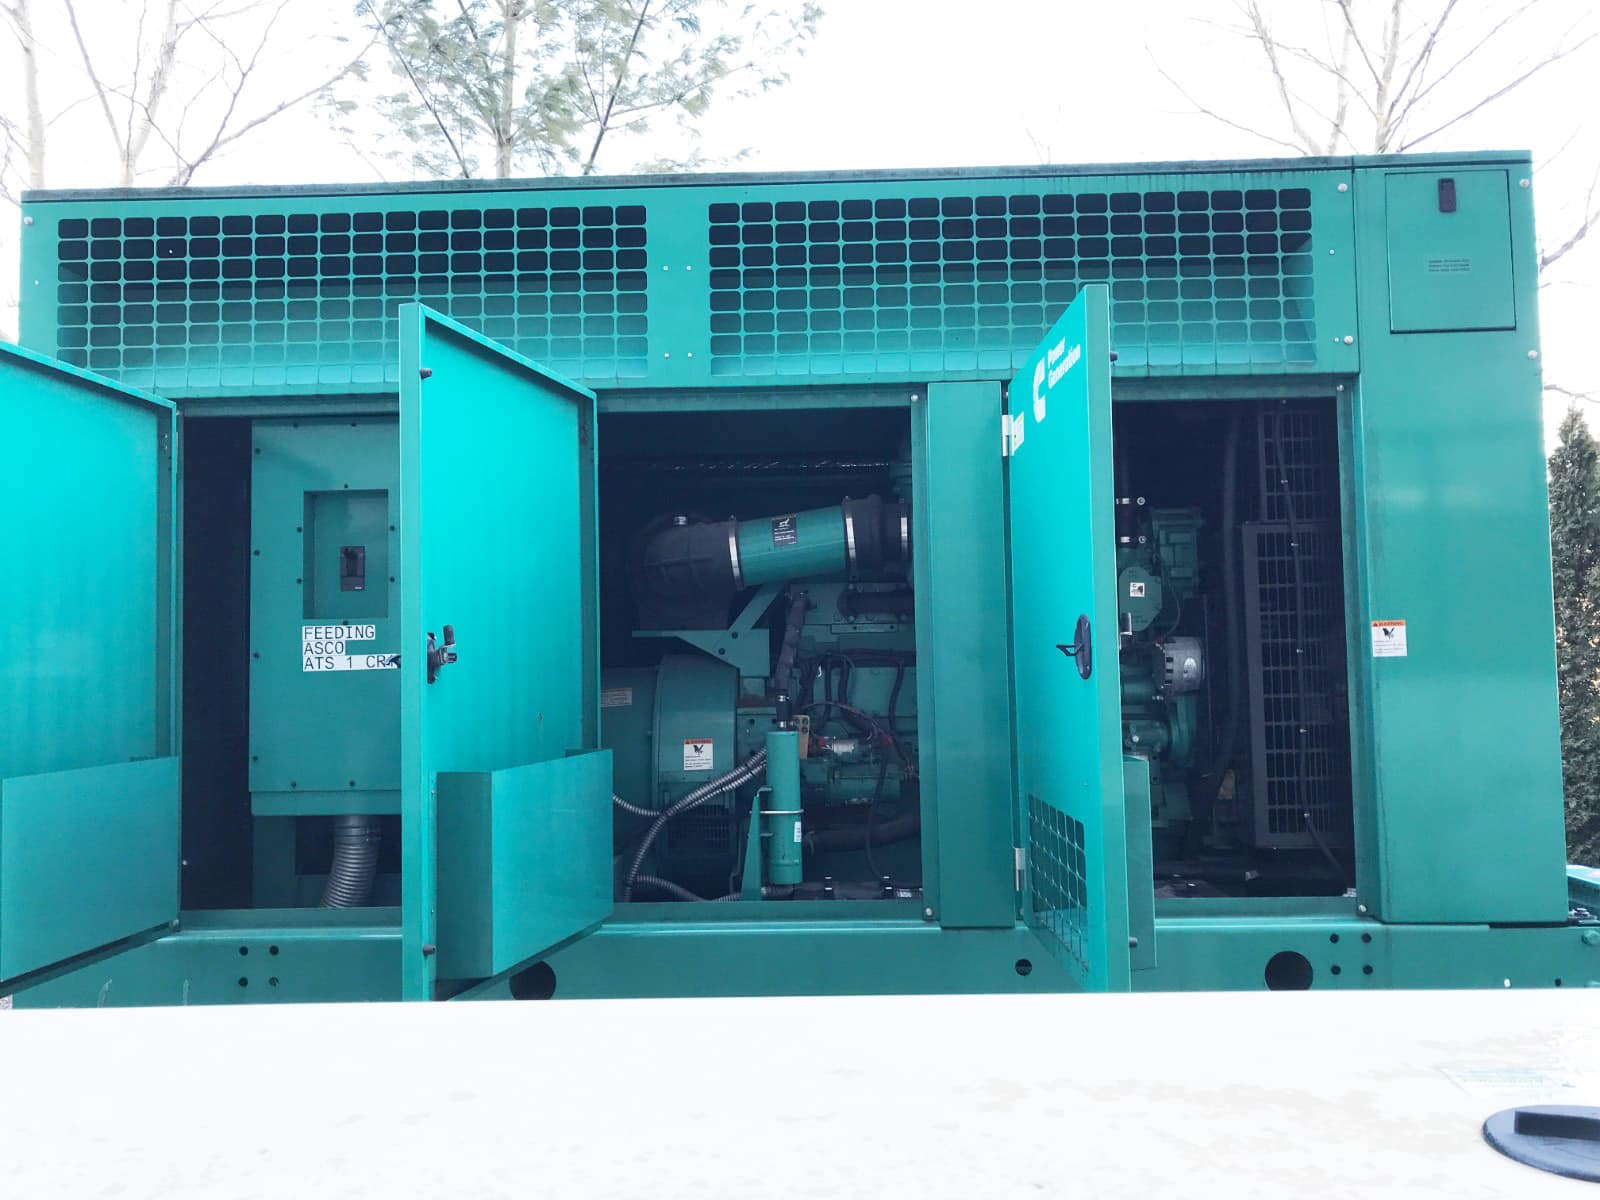 Used 500 kW Cummins DFEK Diesel Generator – EPA Tier 2 – JUST IN!